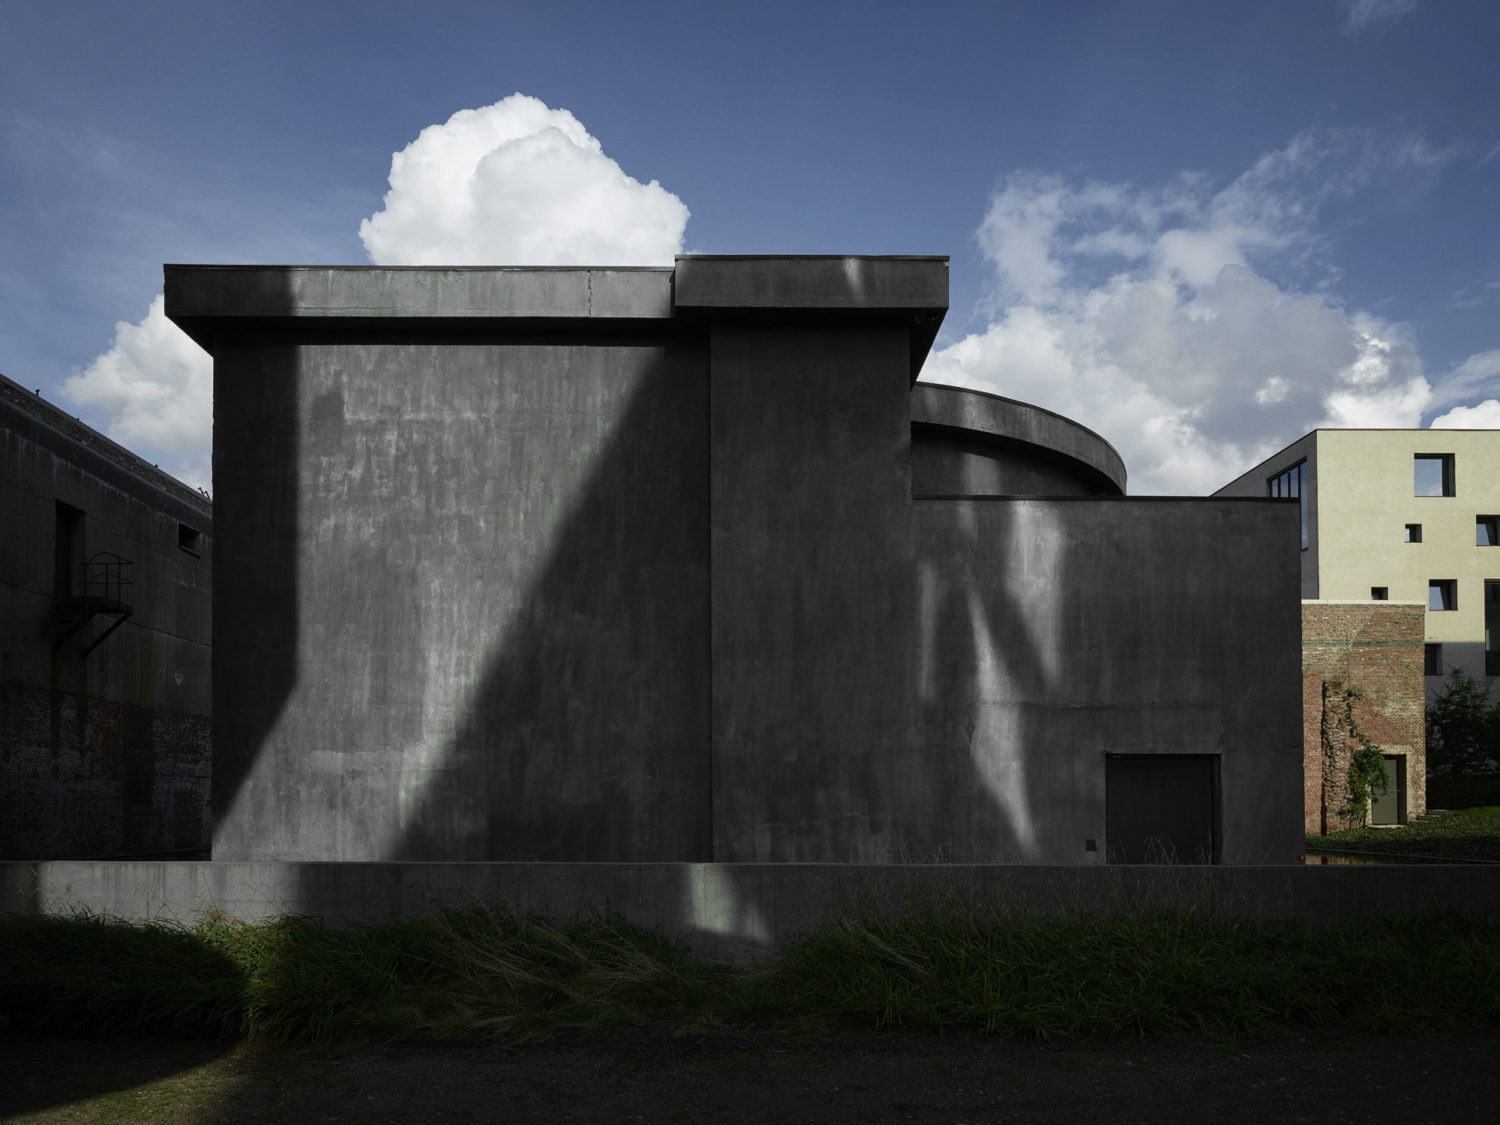 The building hosting the Anish Kapoor artwork at Kanaal